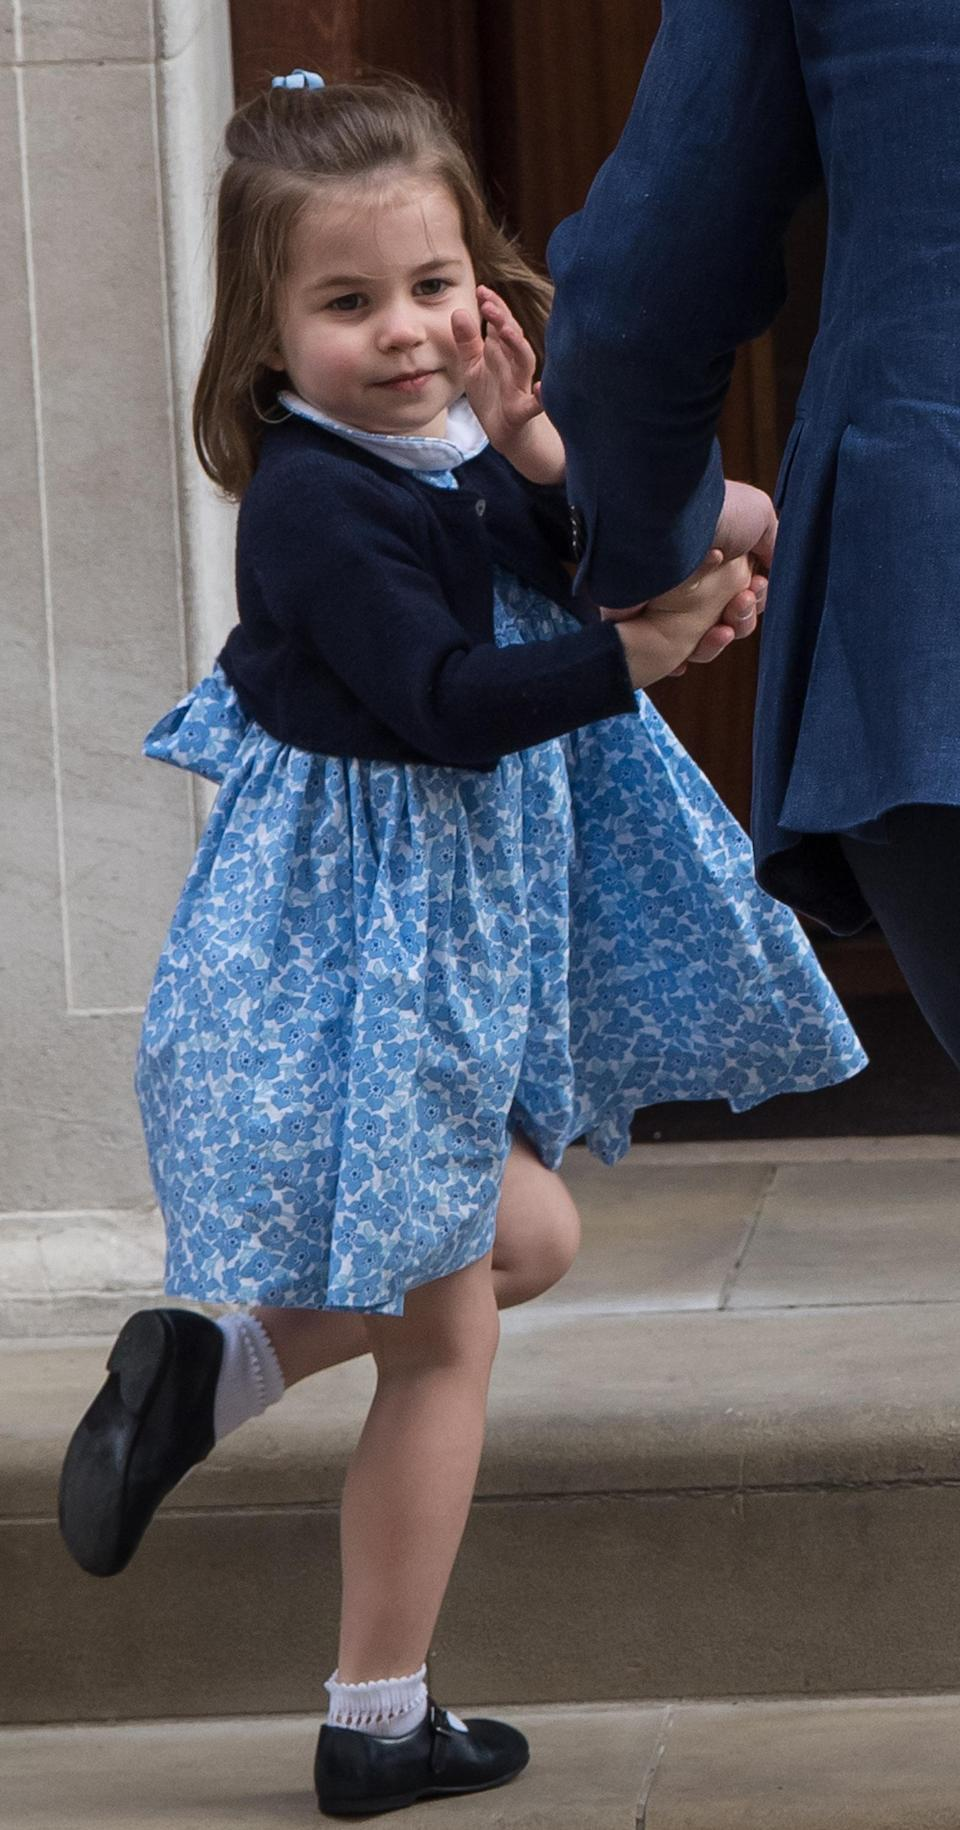 Princess Charlotte stole the show during the royal baby's birth on Monday by waving sweetly to the crowds. [Photo: Getty]